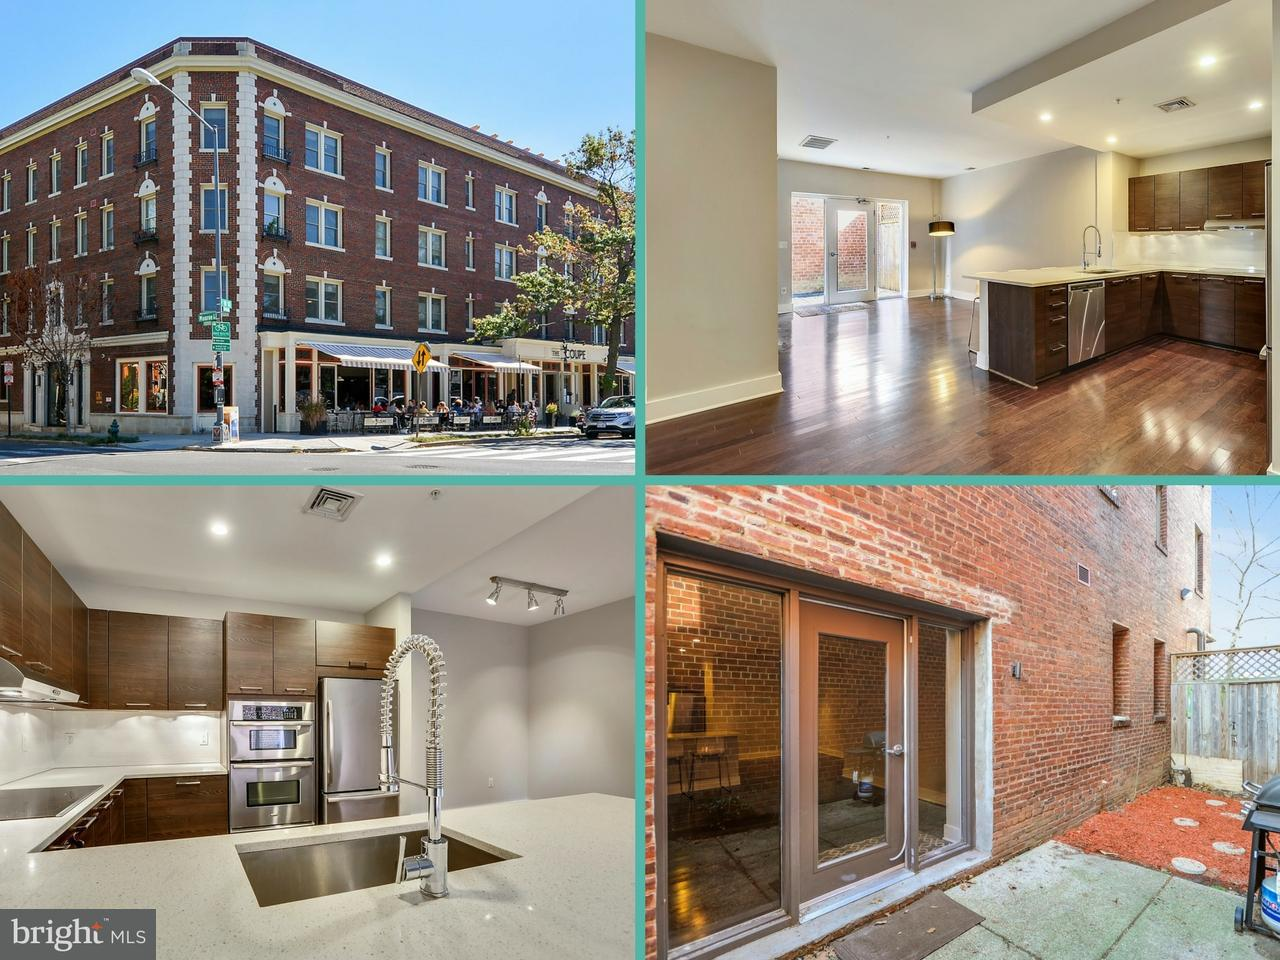 Condominium for Sale at 1020 Monroe St Nw #101 1020 Monroe St Nw #101 Washington, District Of Columbia 20010 United States